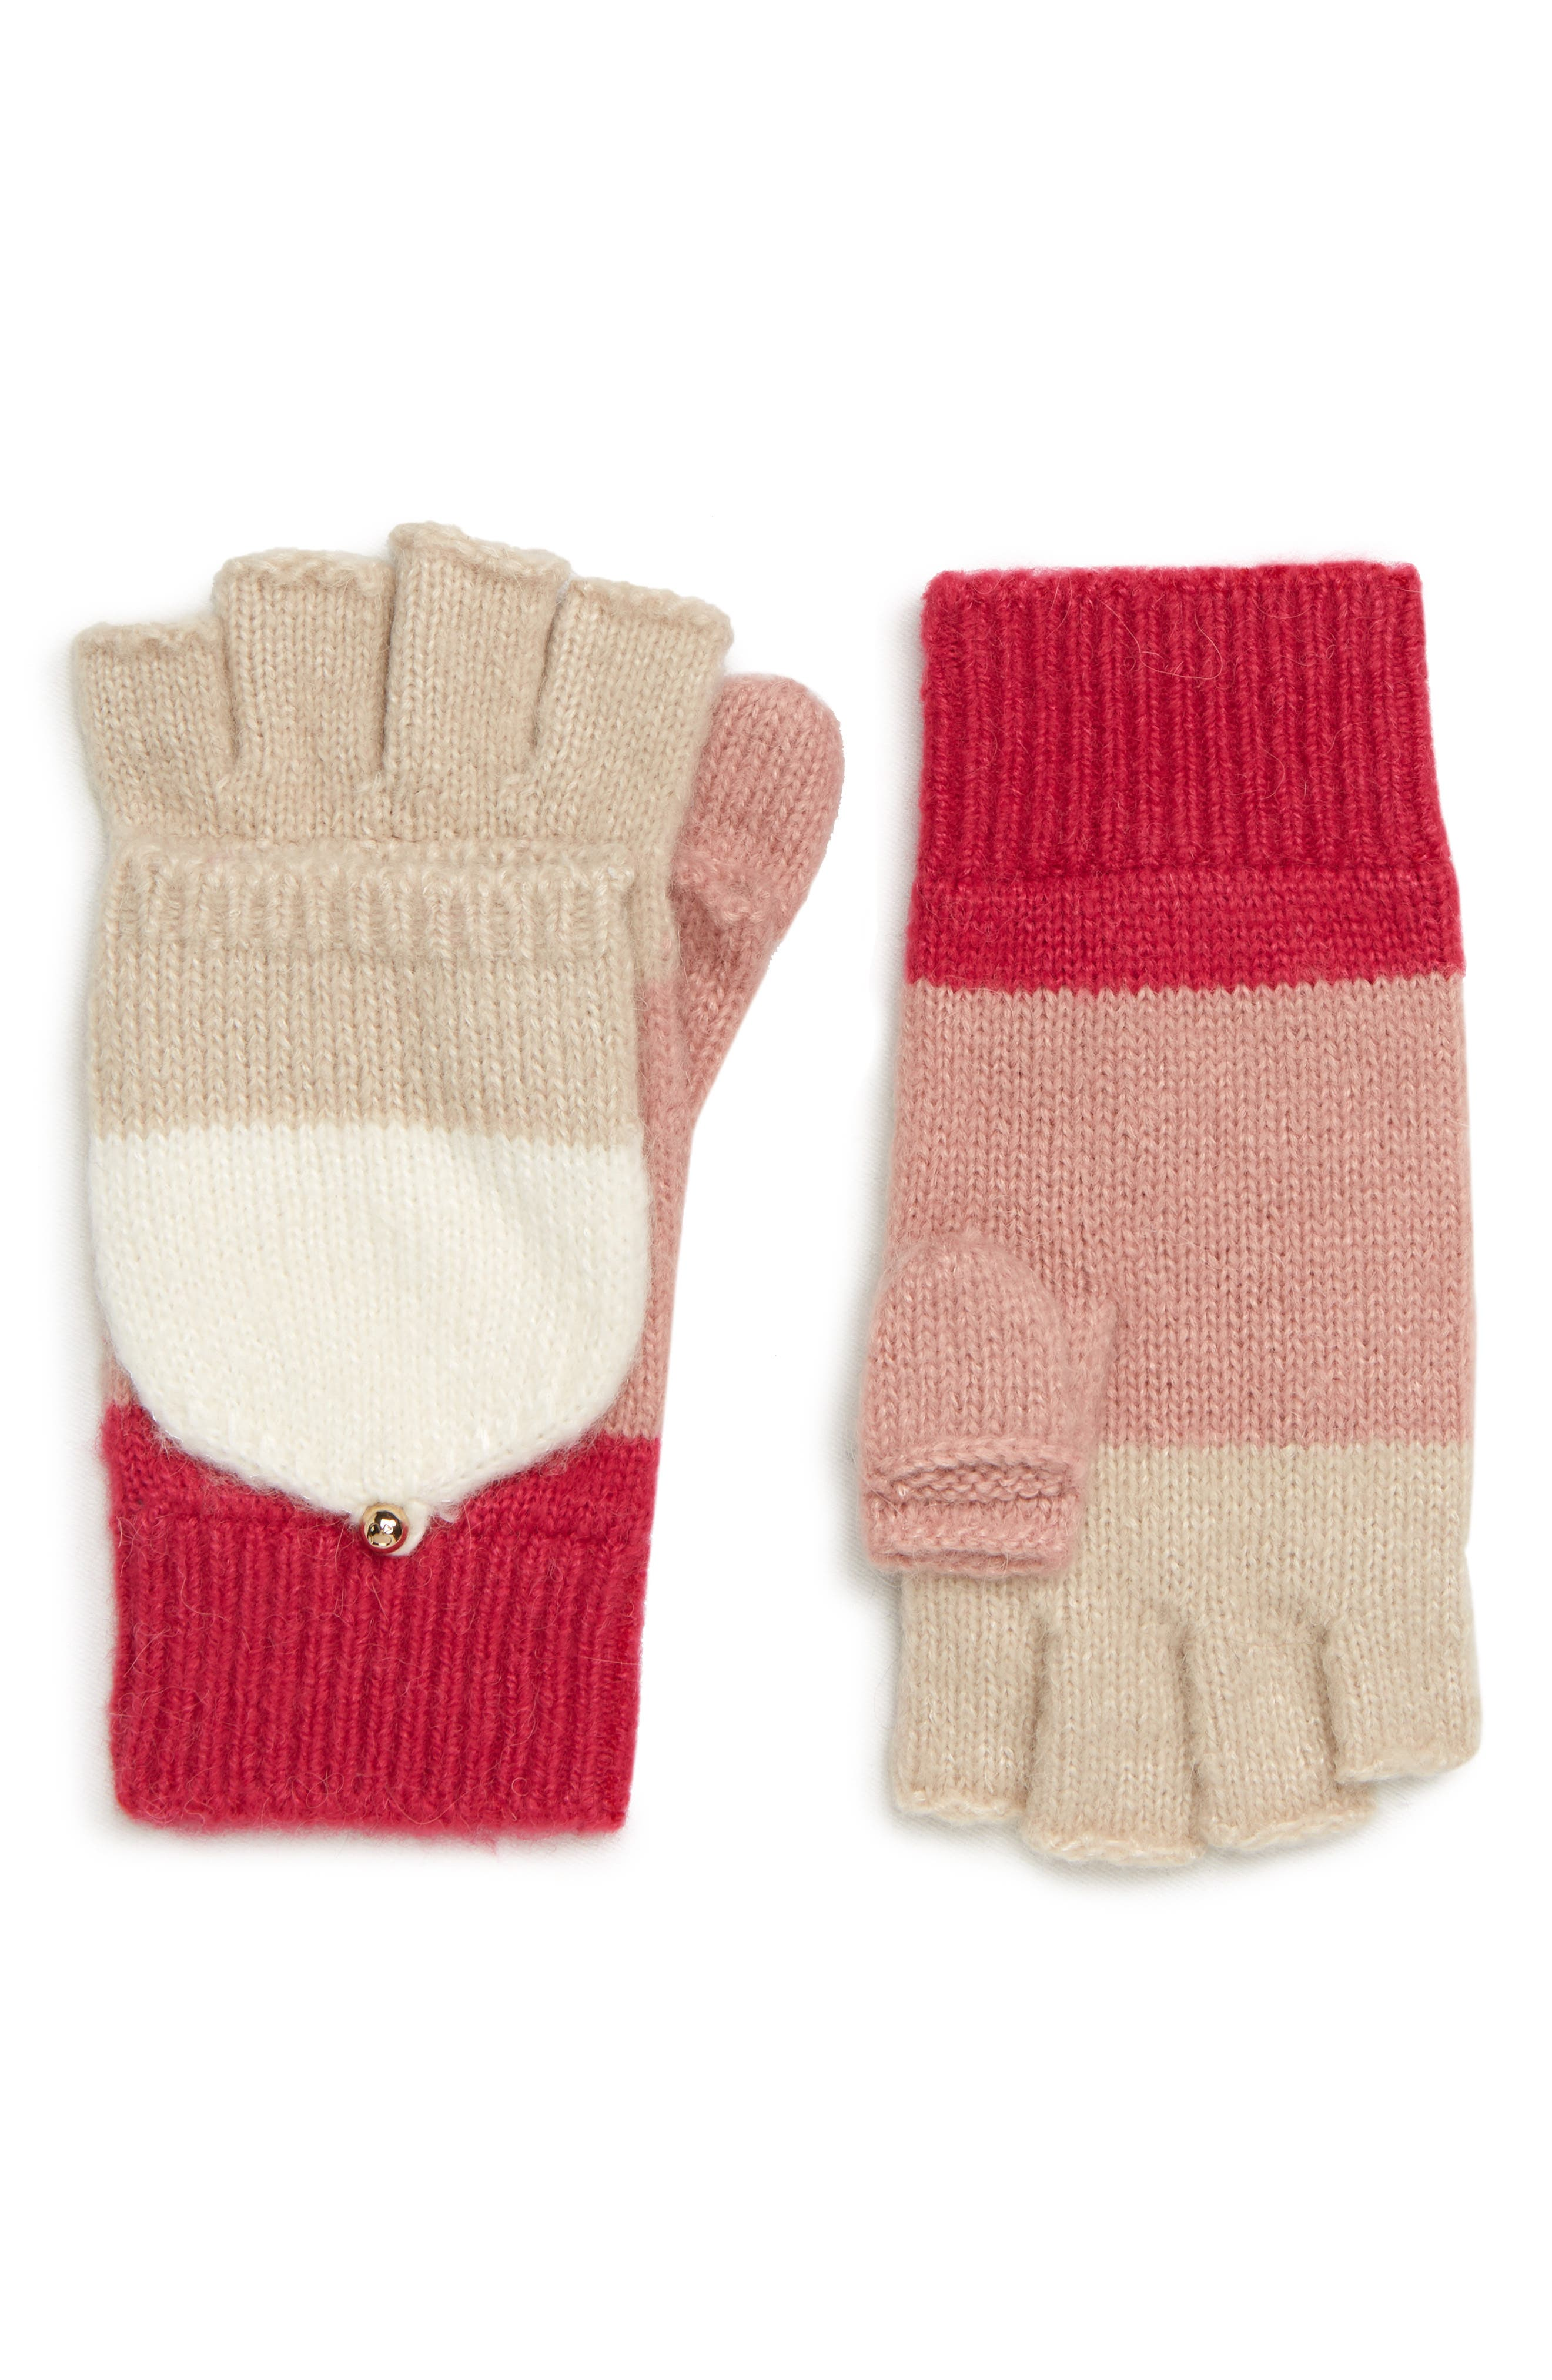 brushed knit colorblock convertible mittens,                         Main,                         color, CREAM/ OATMEAL/ PEONY/ BEGONIA